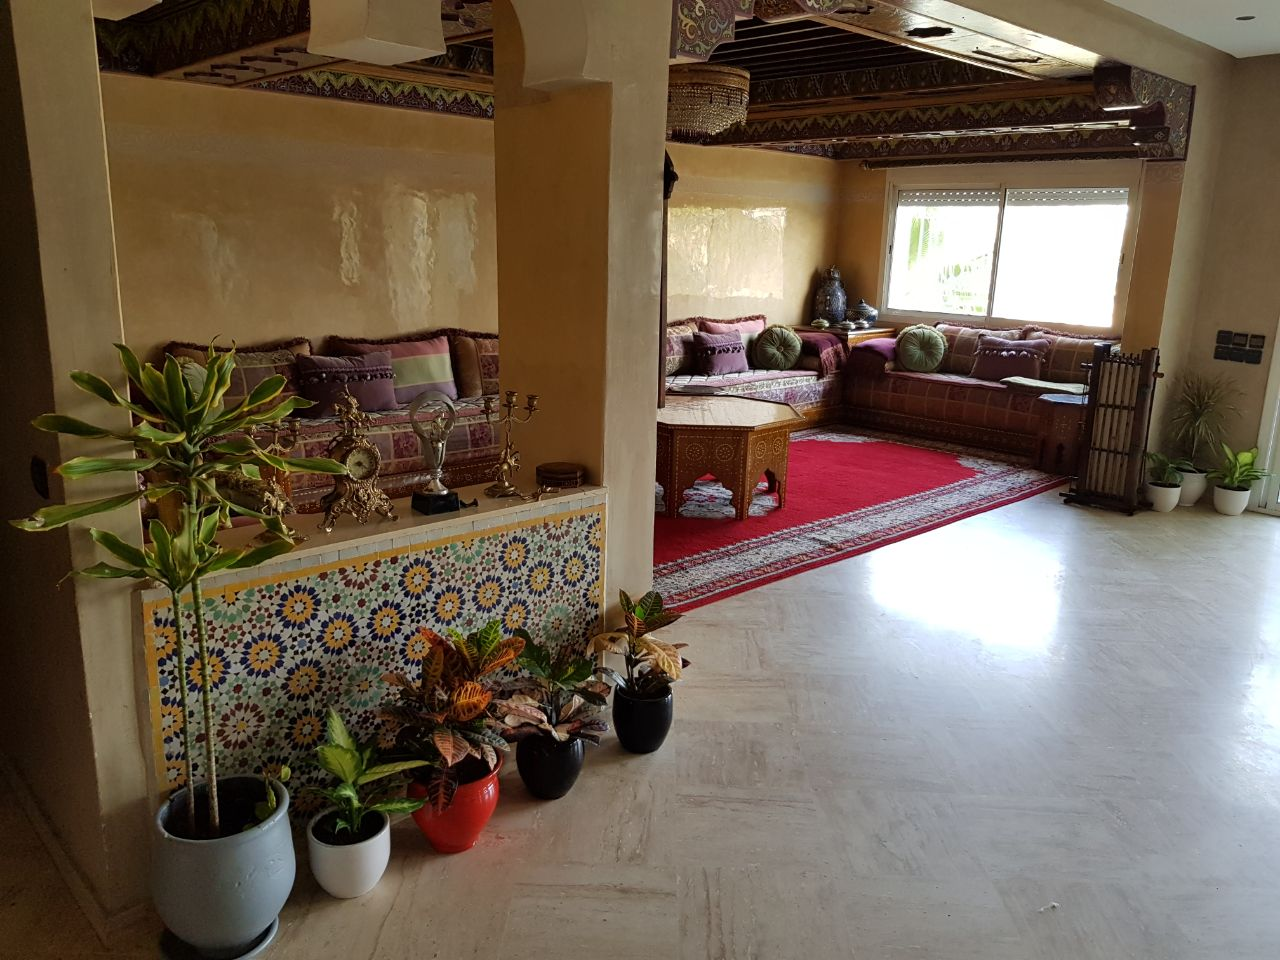 Location appartement casablanca californie century 21 ollier for Appartement en location